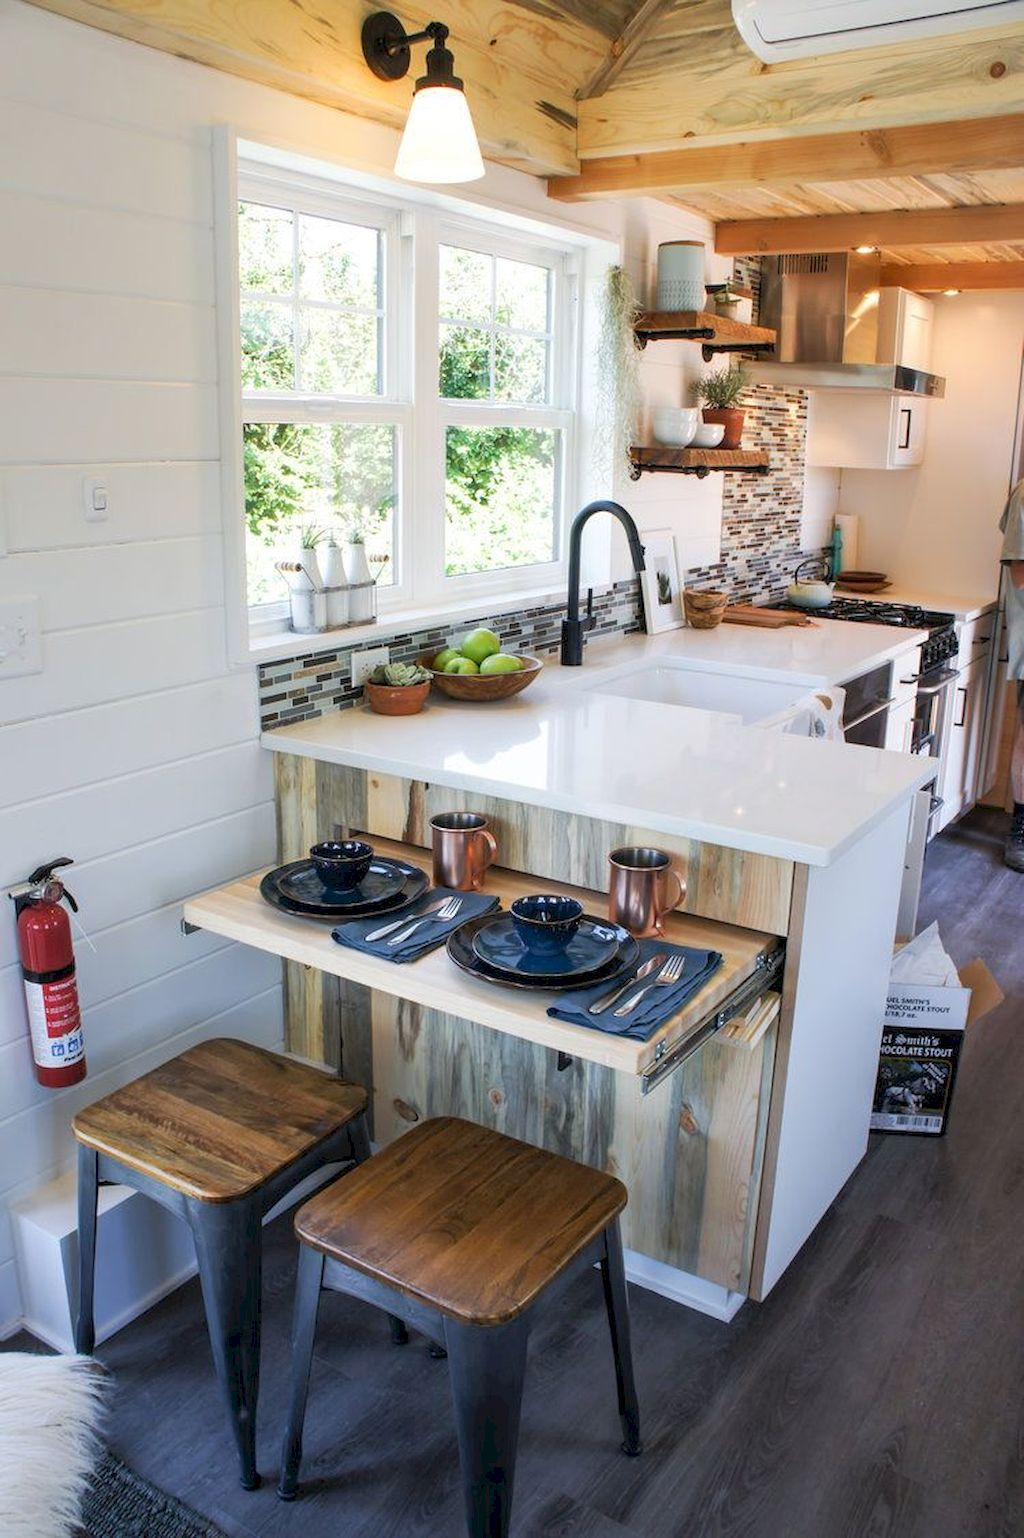 Tiny Kitchen Design Images The 11 Tiny House Kitchens That 39ll Make You Rethink Big